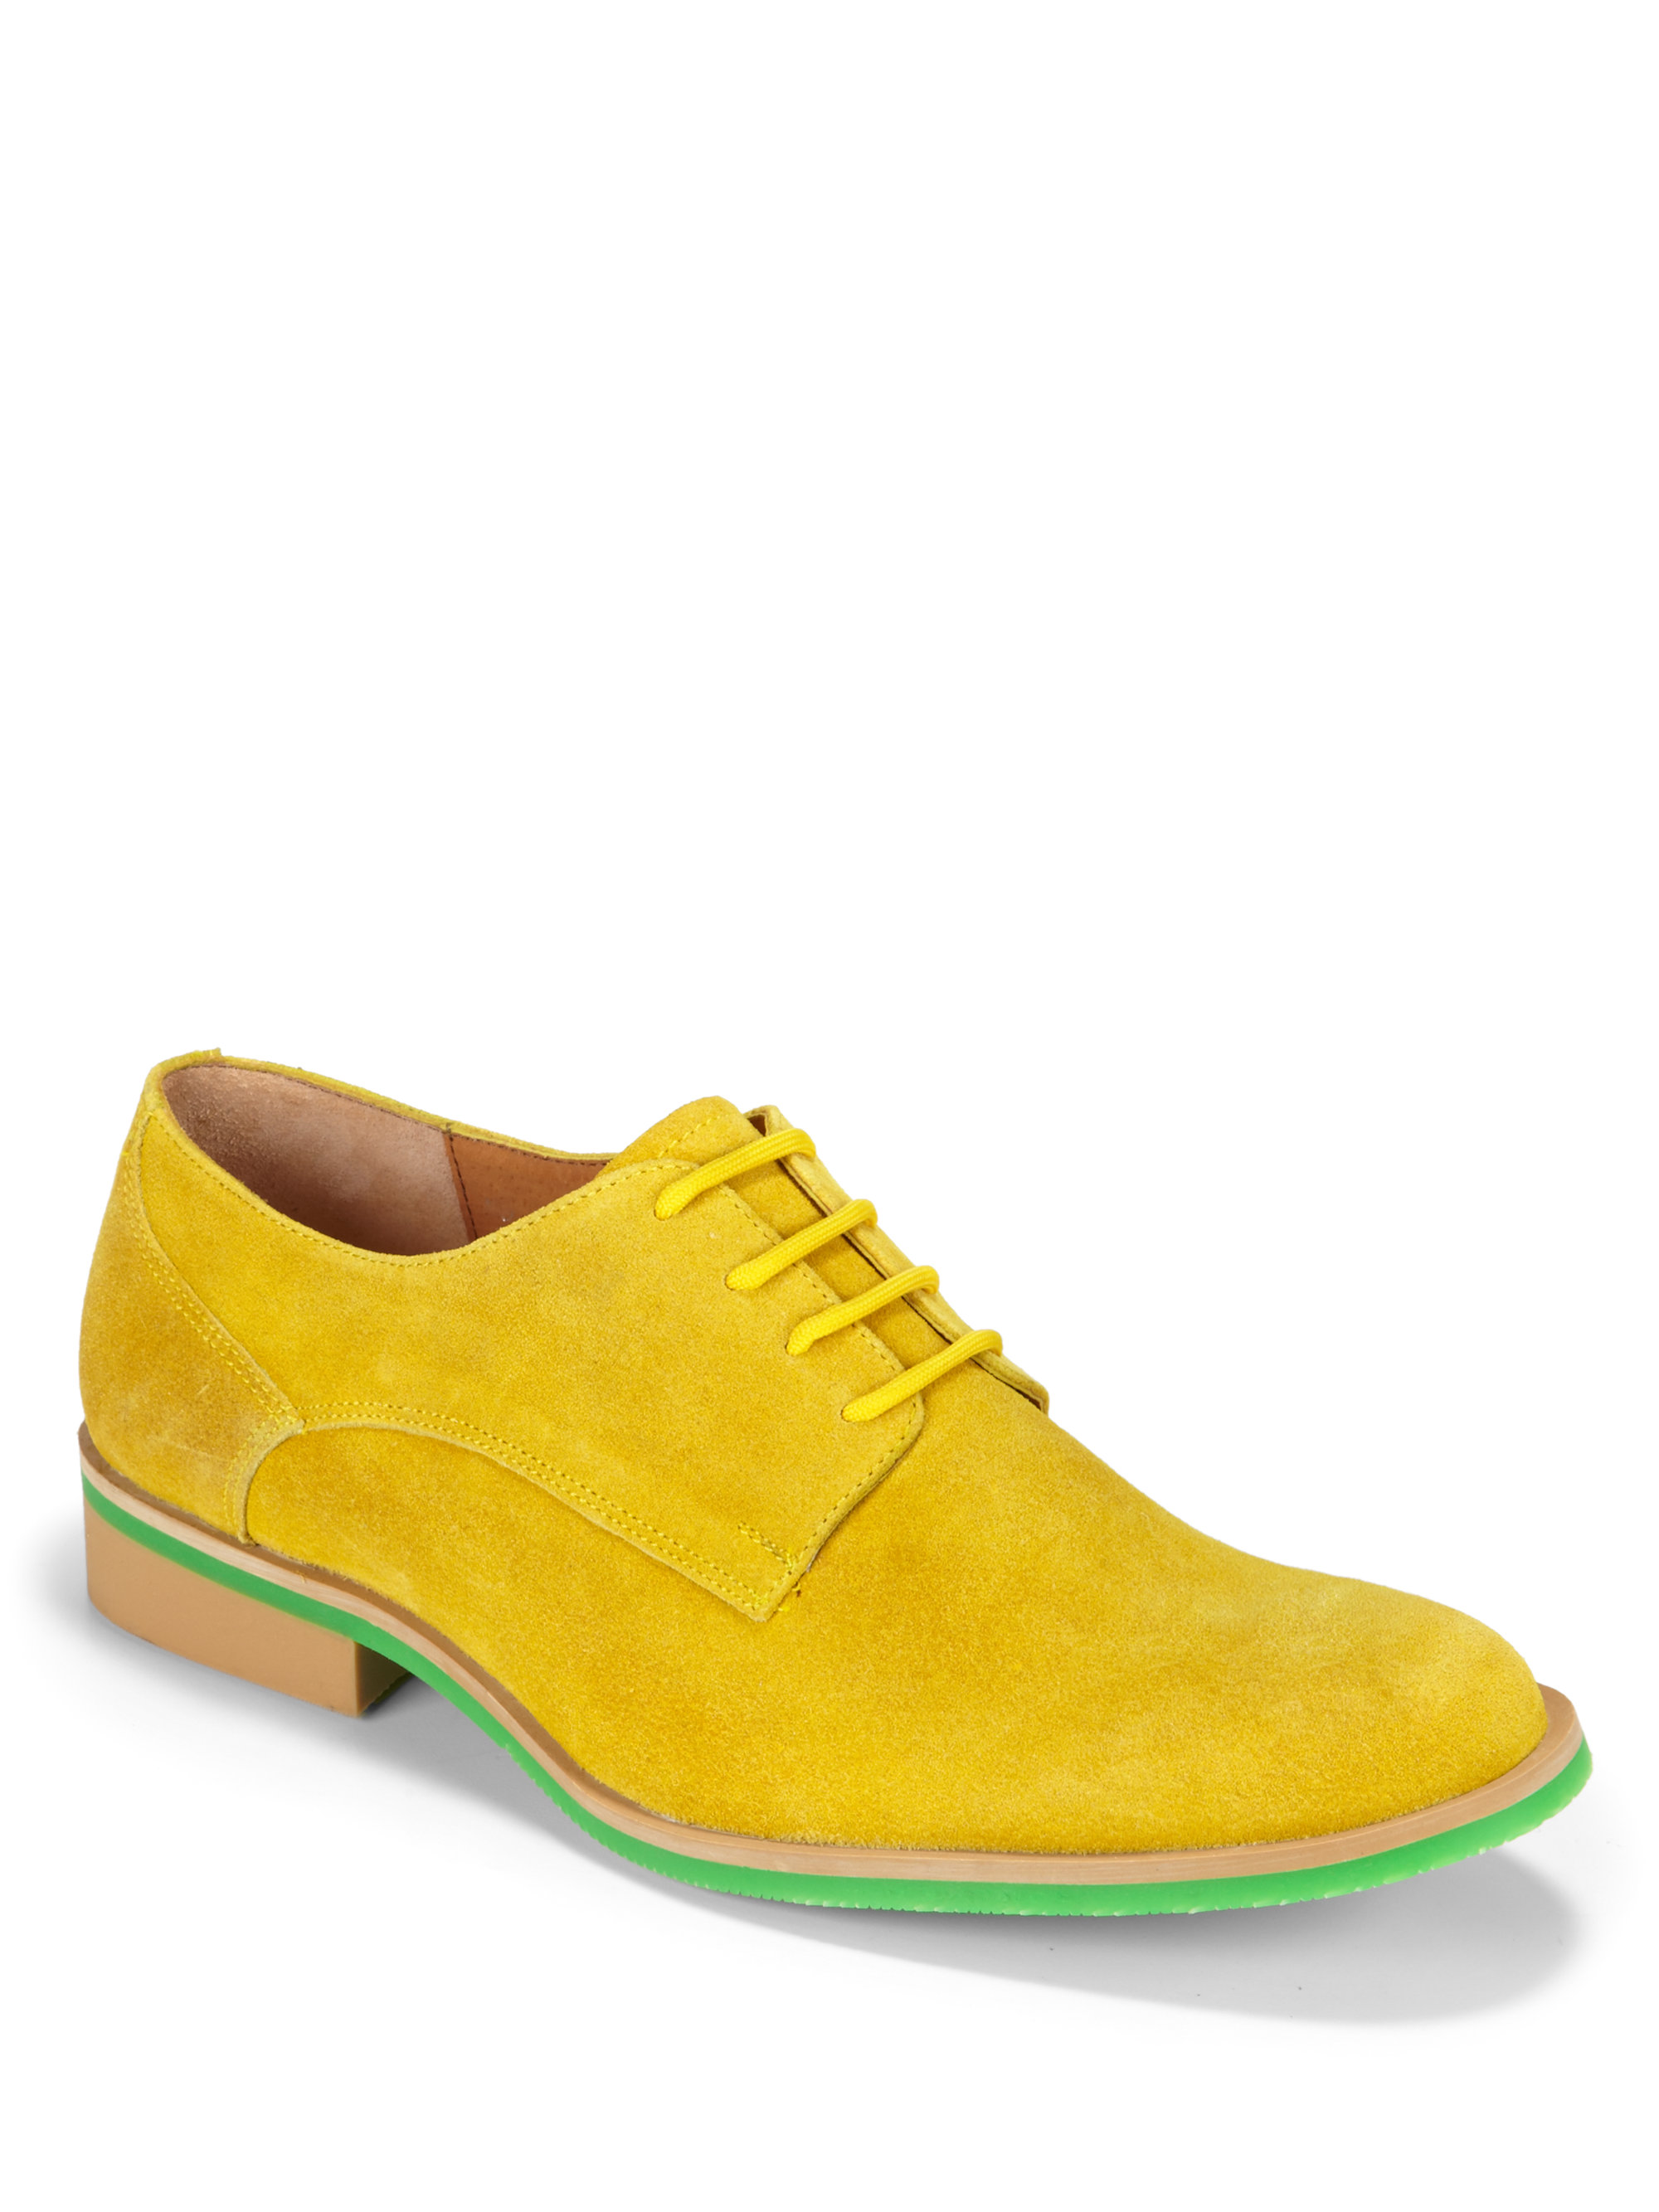 jd fisk callum suede laceup shoes in yellow for lyst